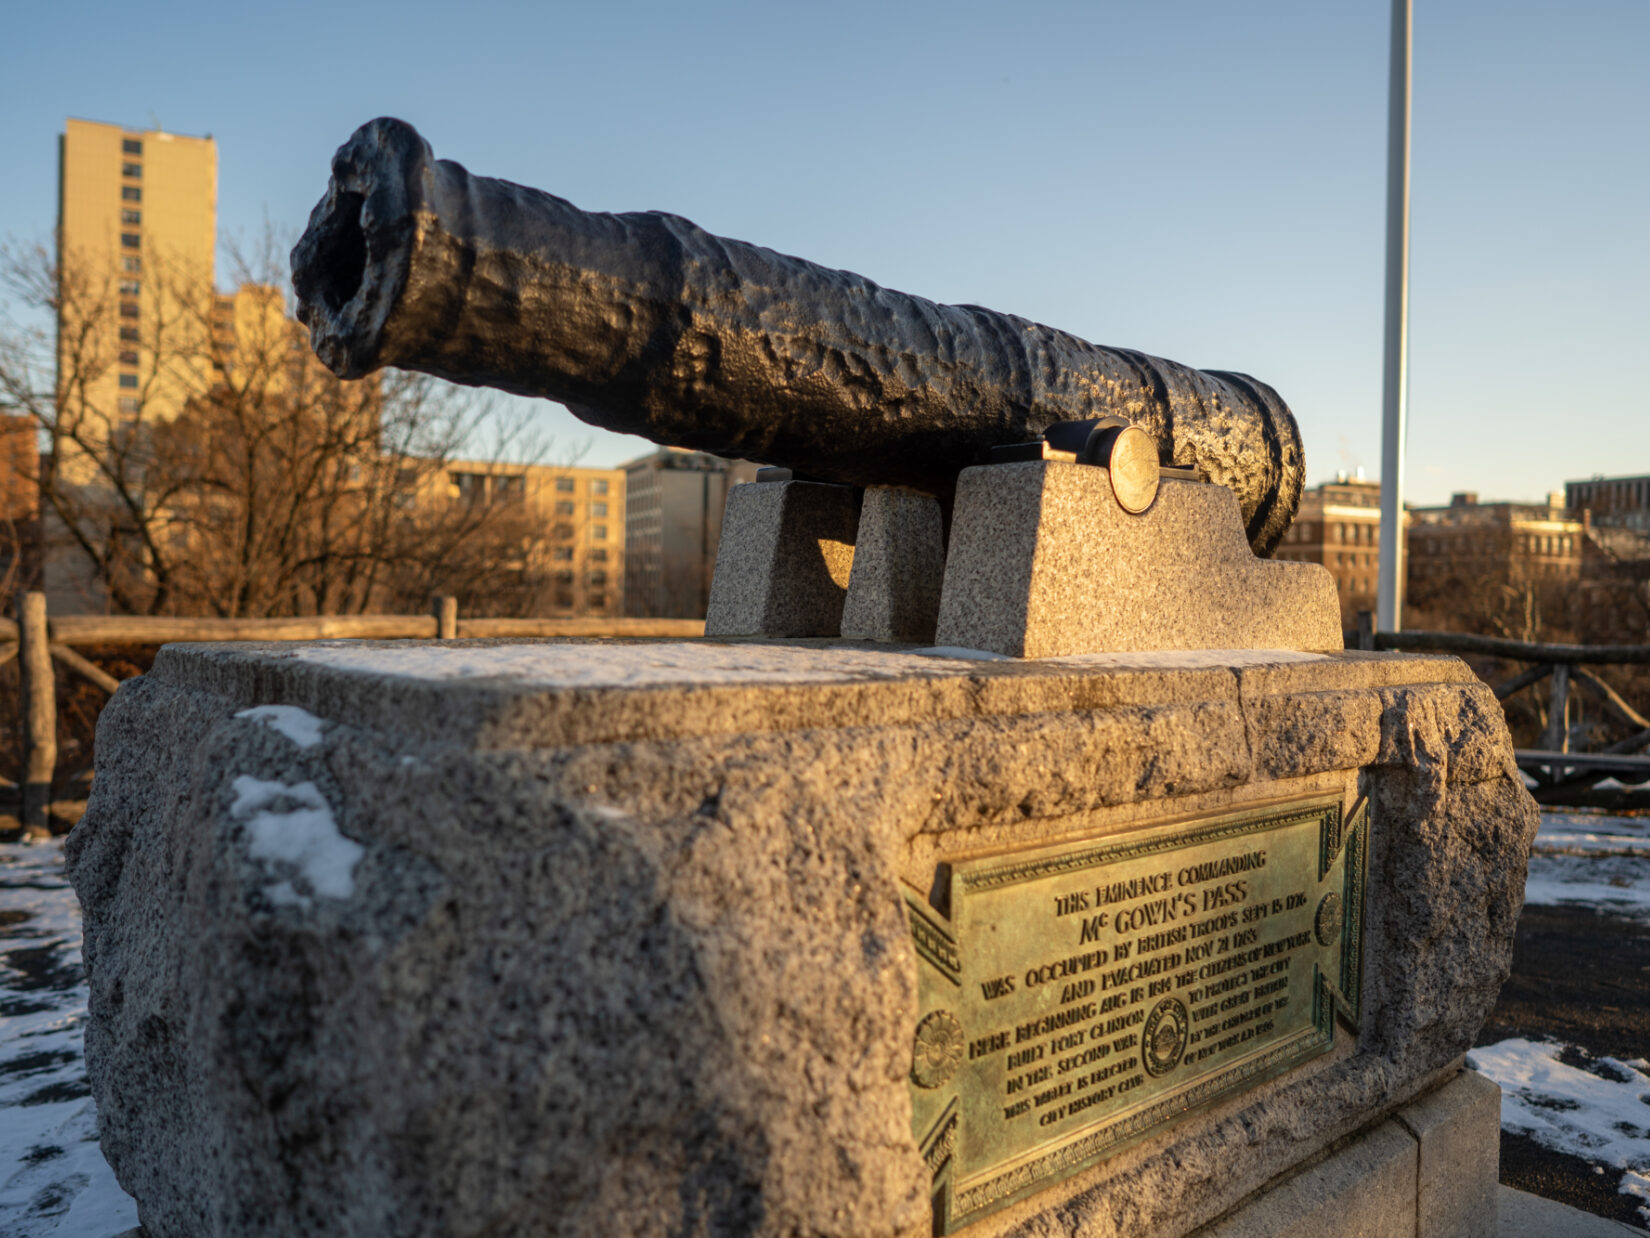 The cannon at Fort Clinton seen on a bright, winter day